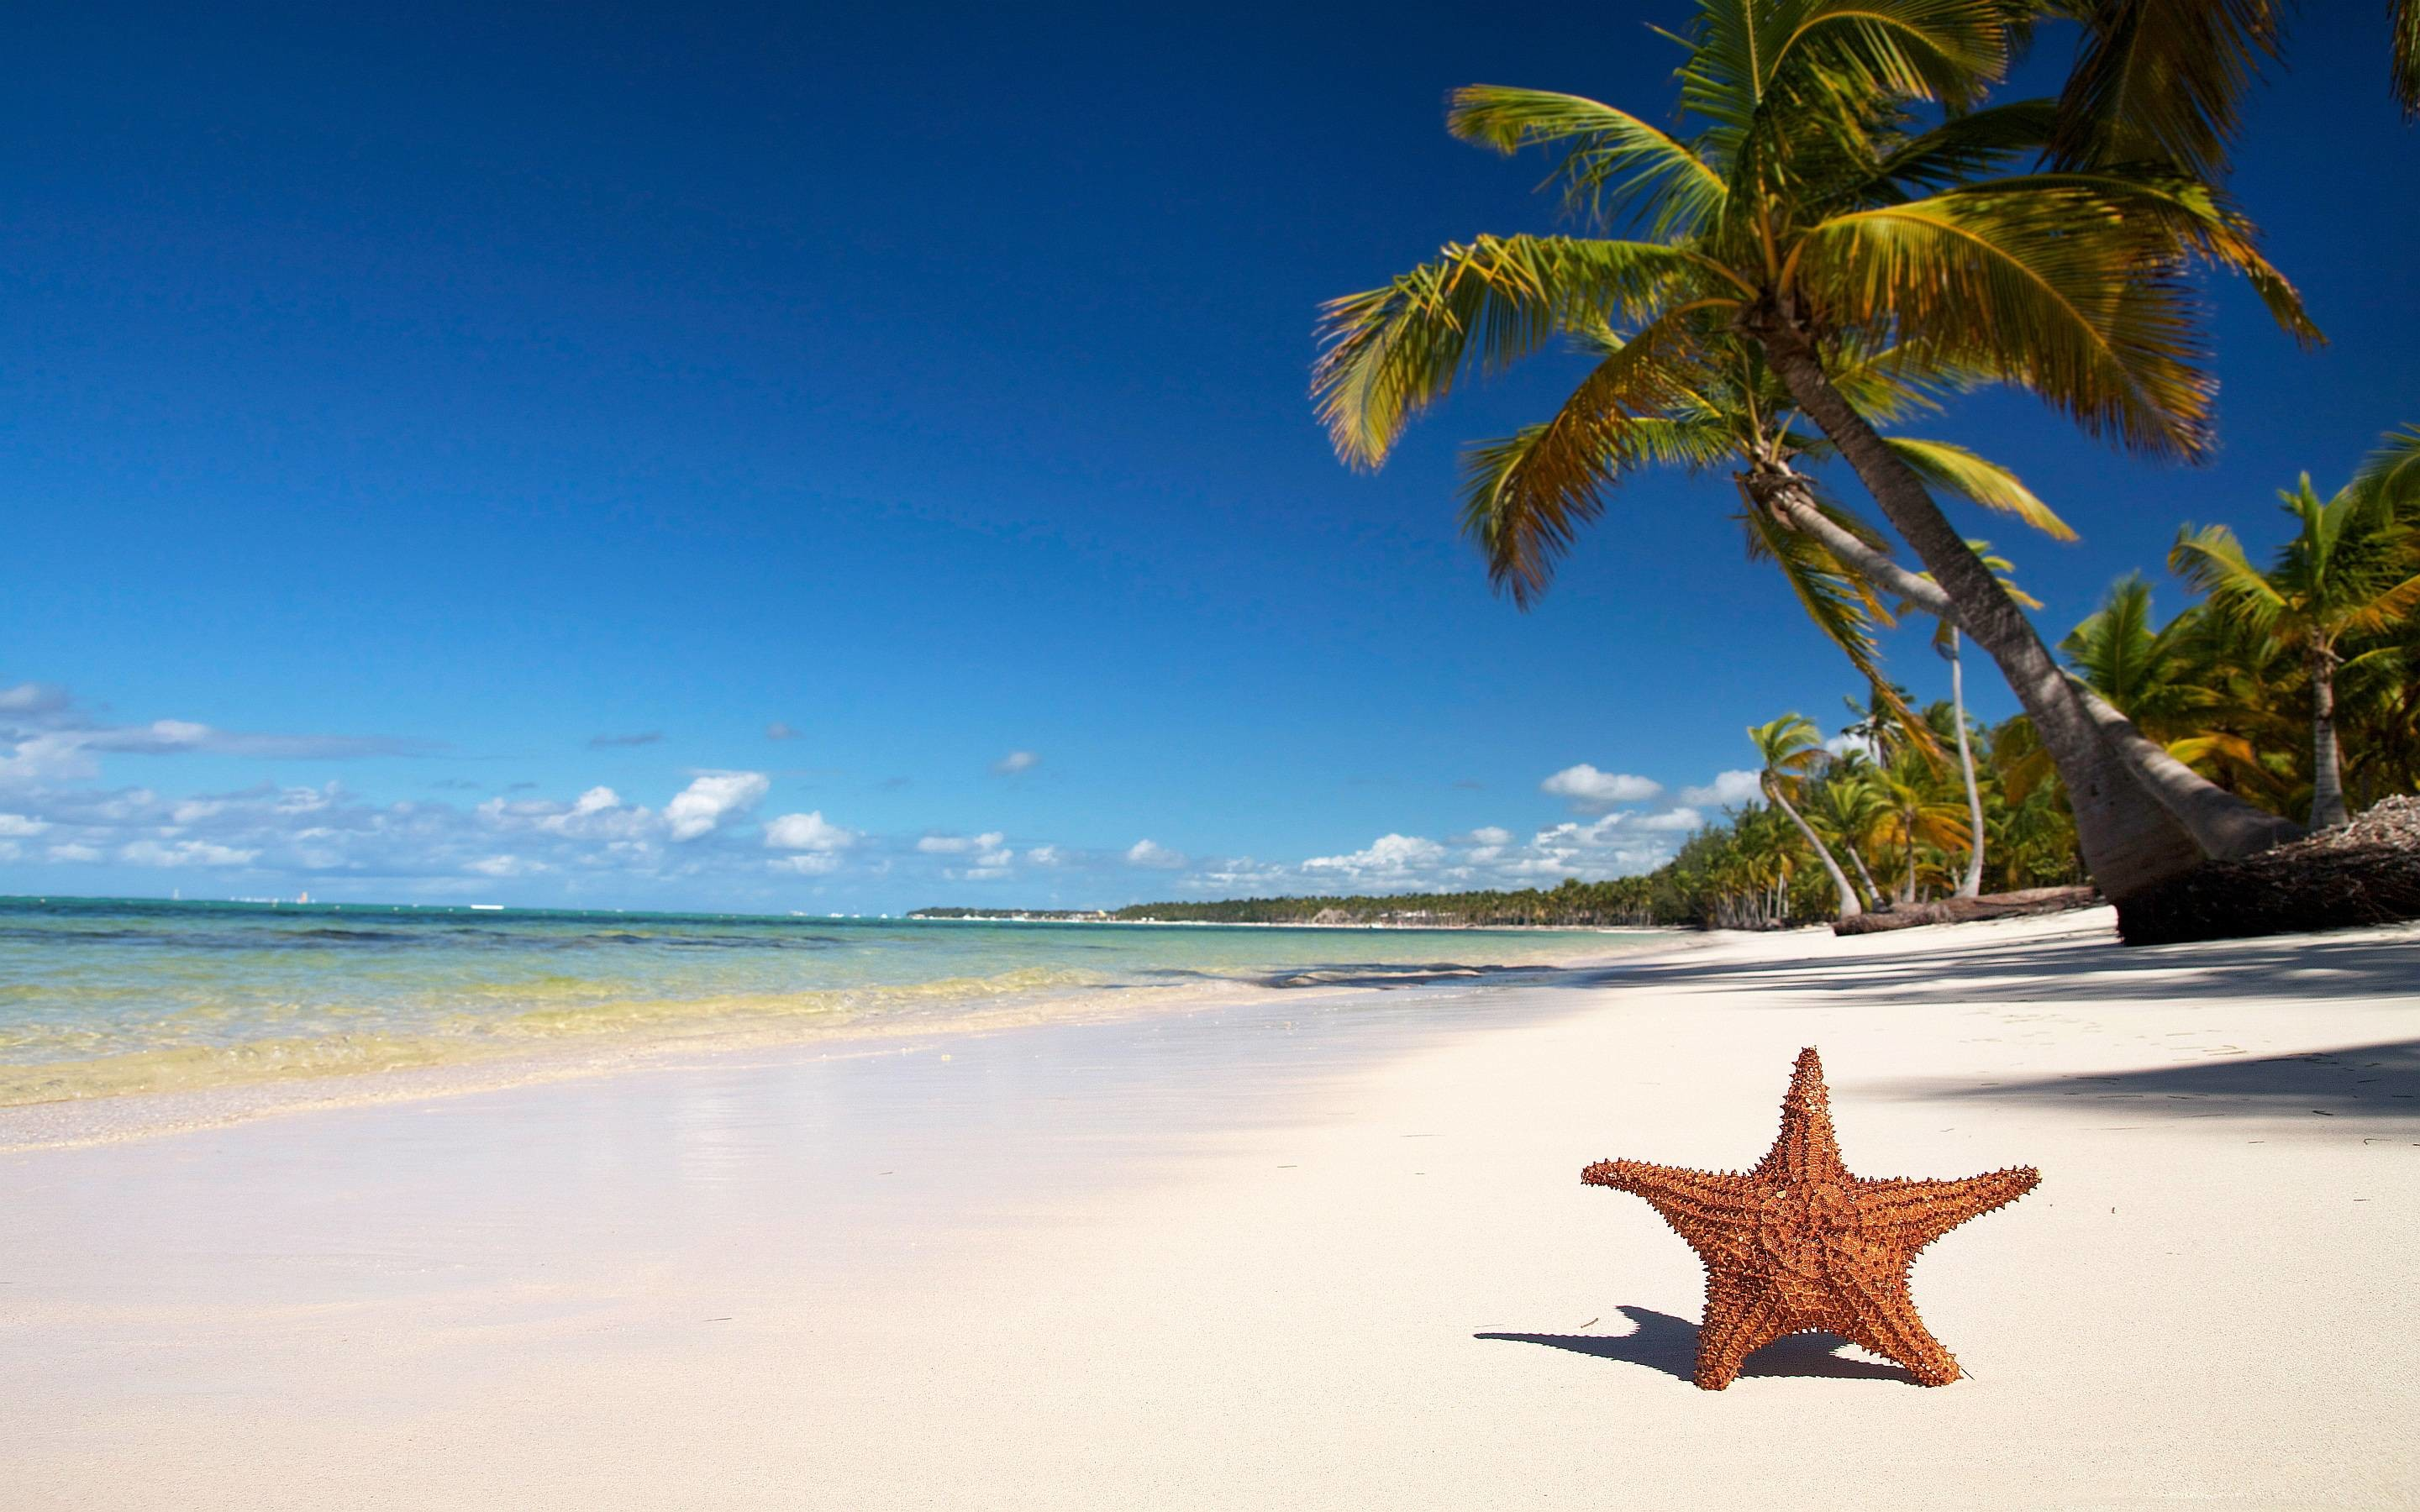 Tropical Beach Wallpapers | High Definition Wallpapers